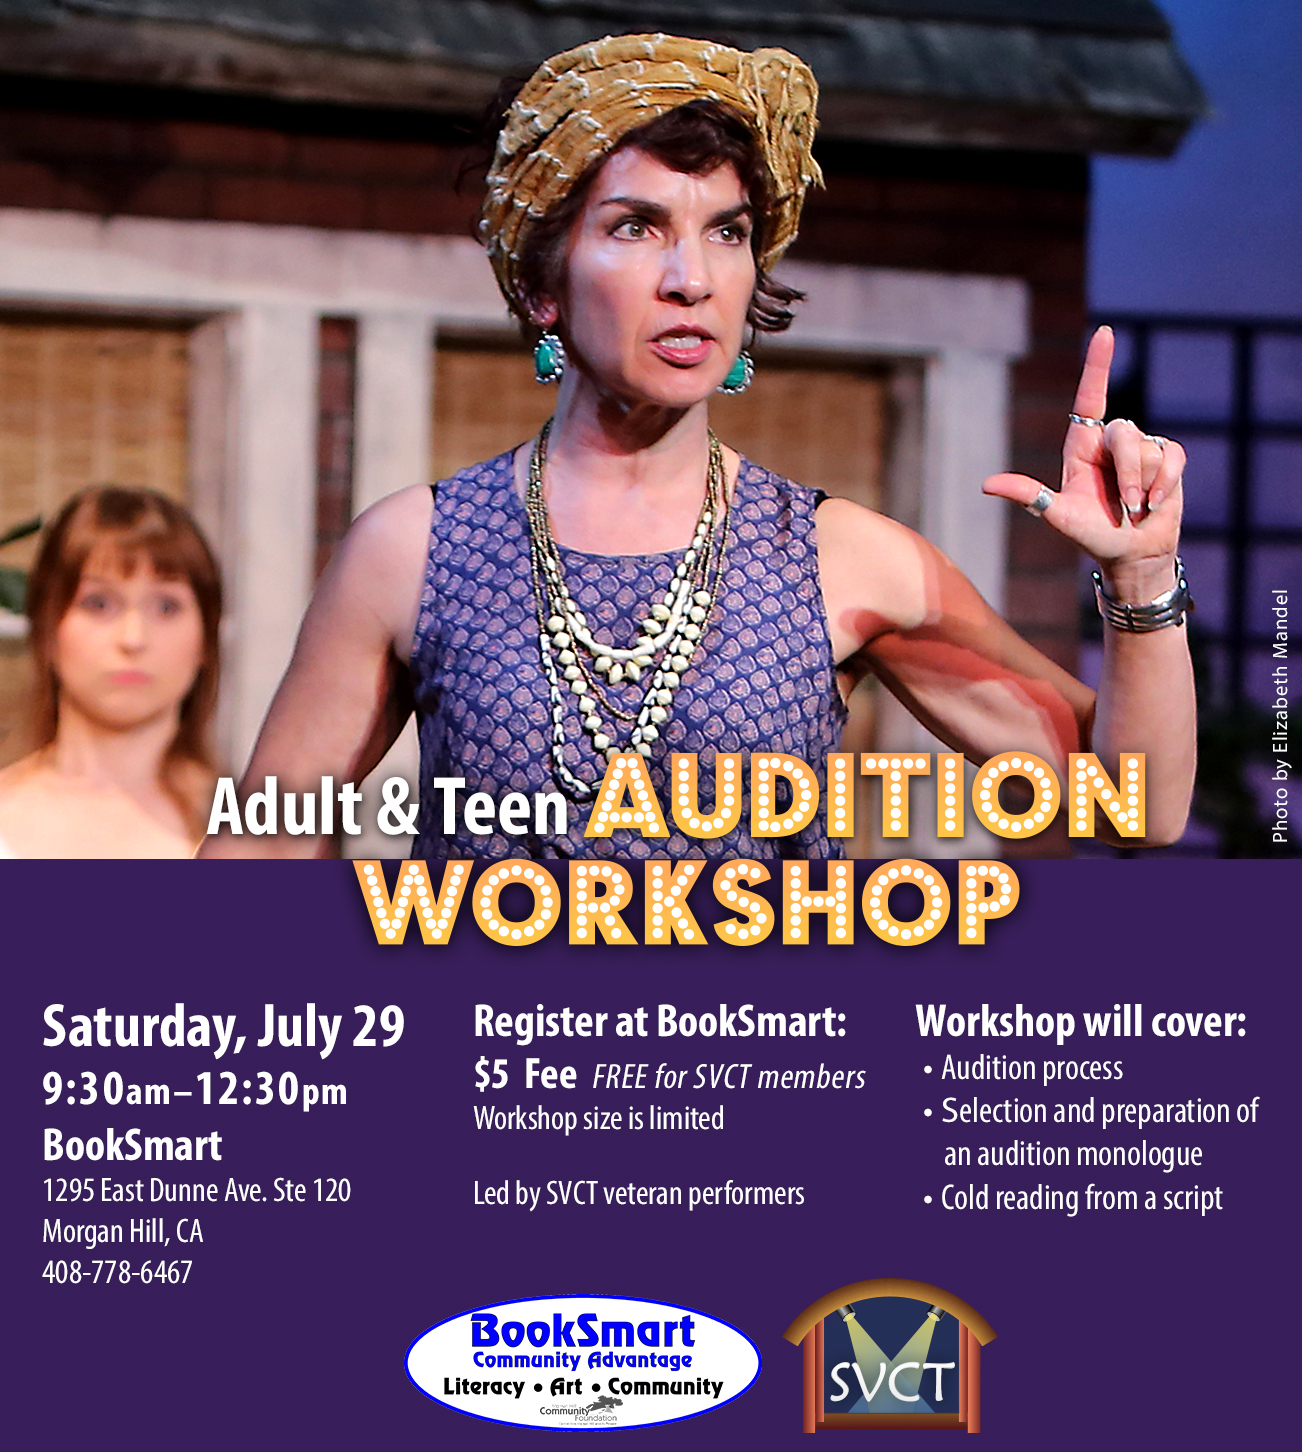 svct_audition_workshop_adult_small